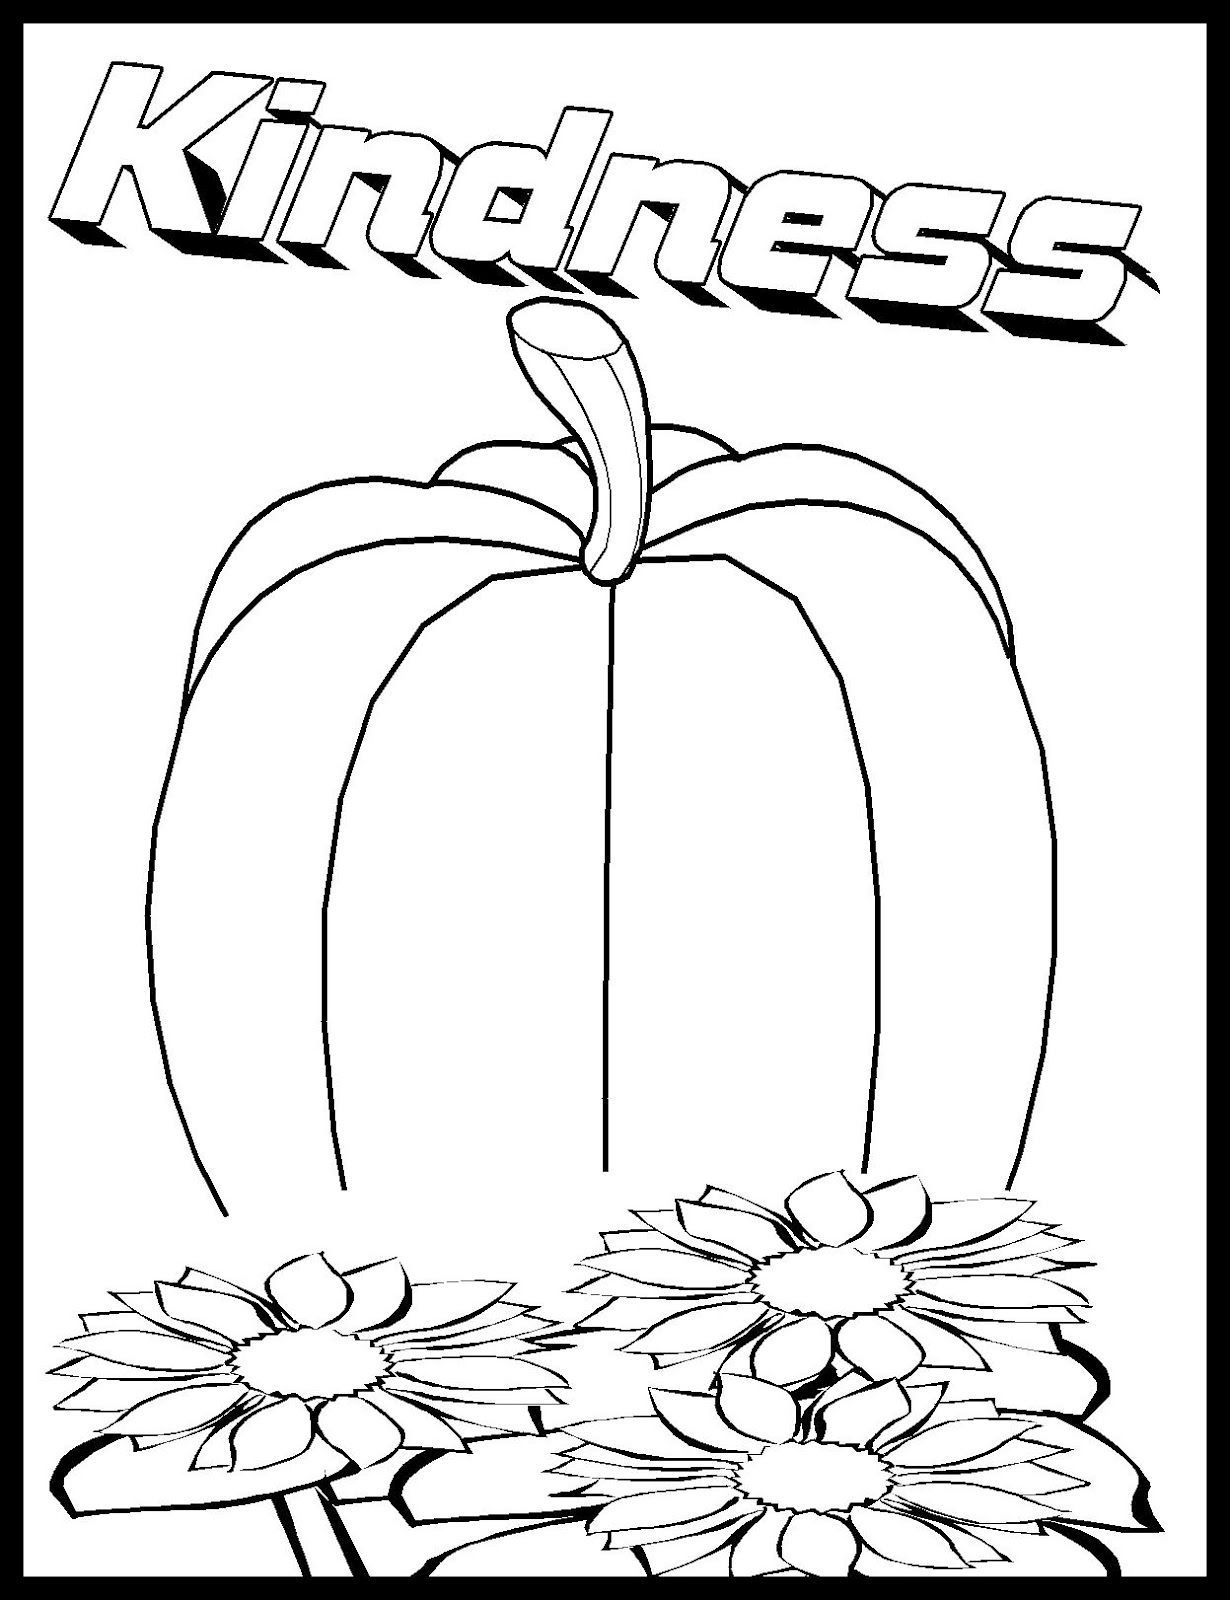 coloring sheets kindness kindness coloring pages coloring pages to download and print sheets kindness coloring